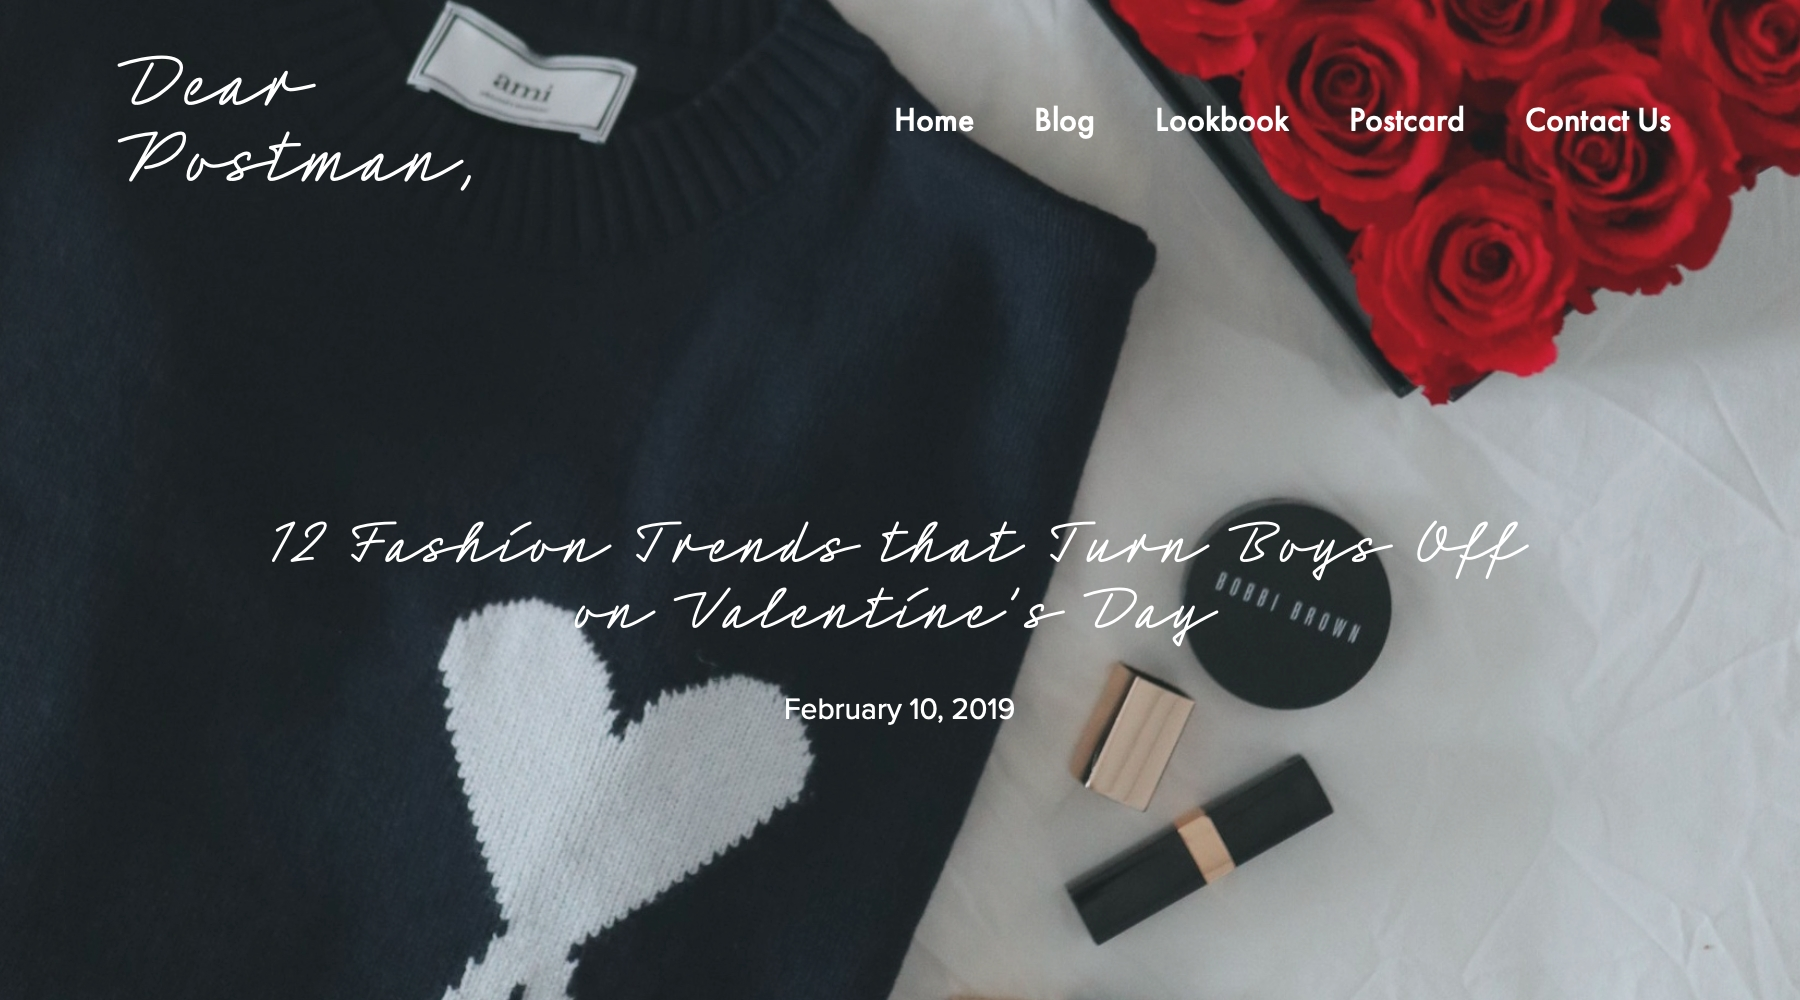 12 Fashion Trends that Turn Boys Off on Valentine's Day